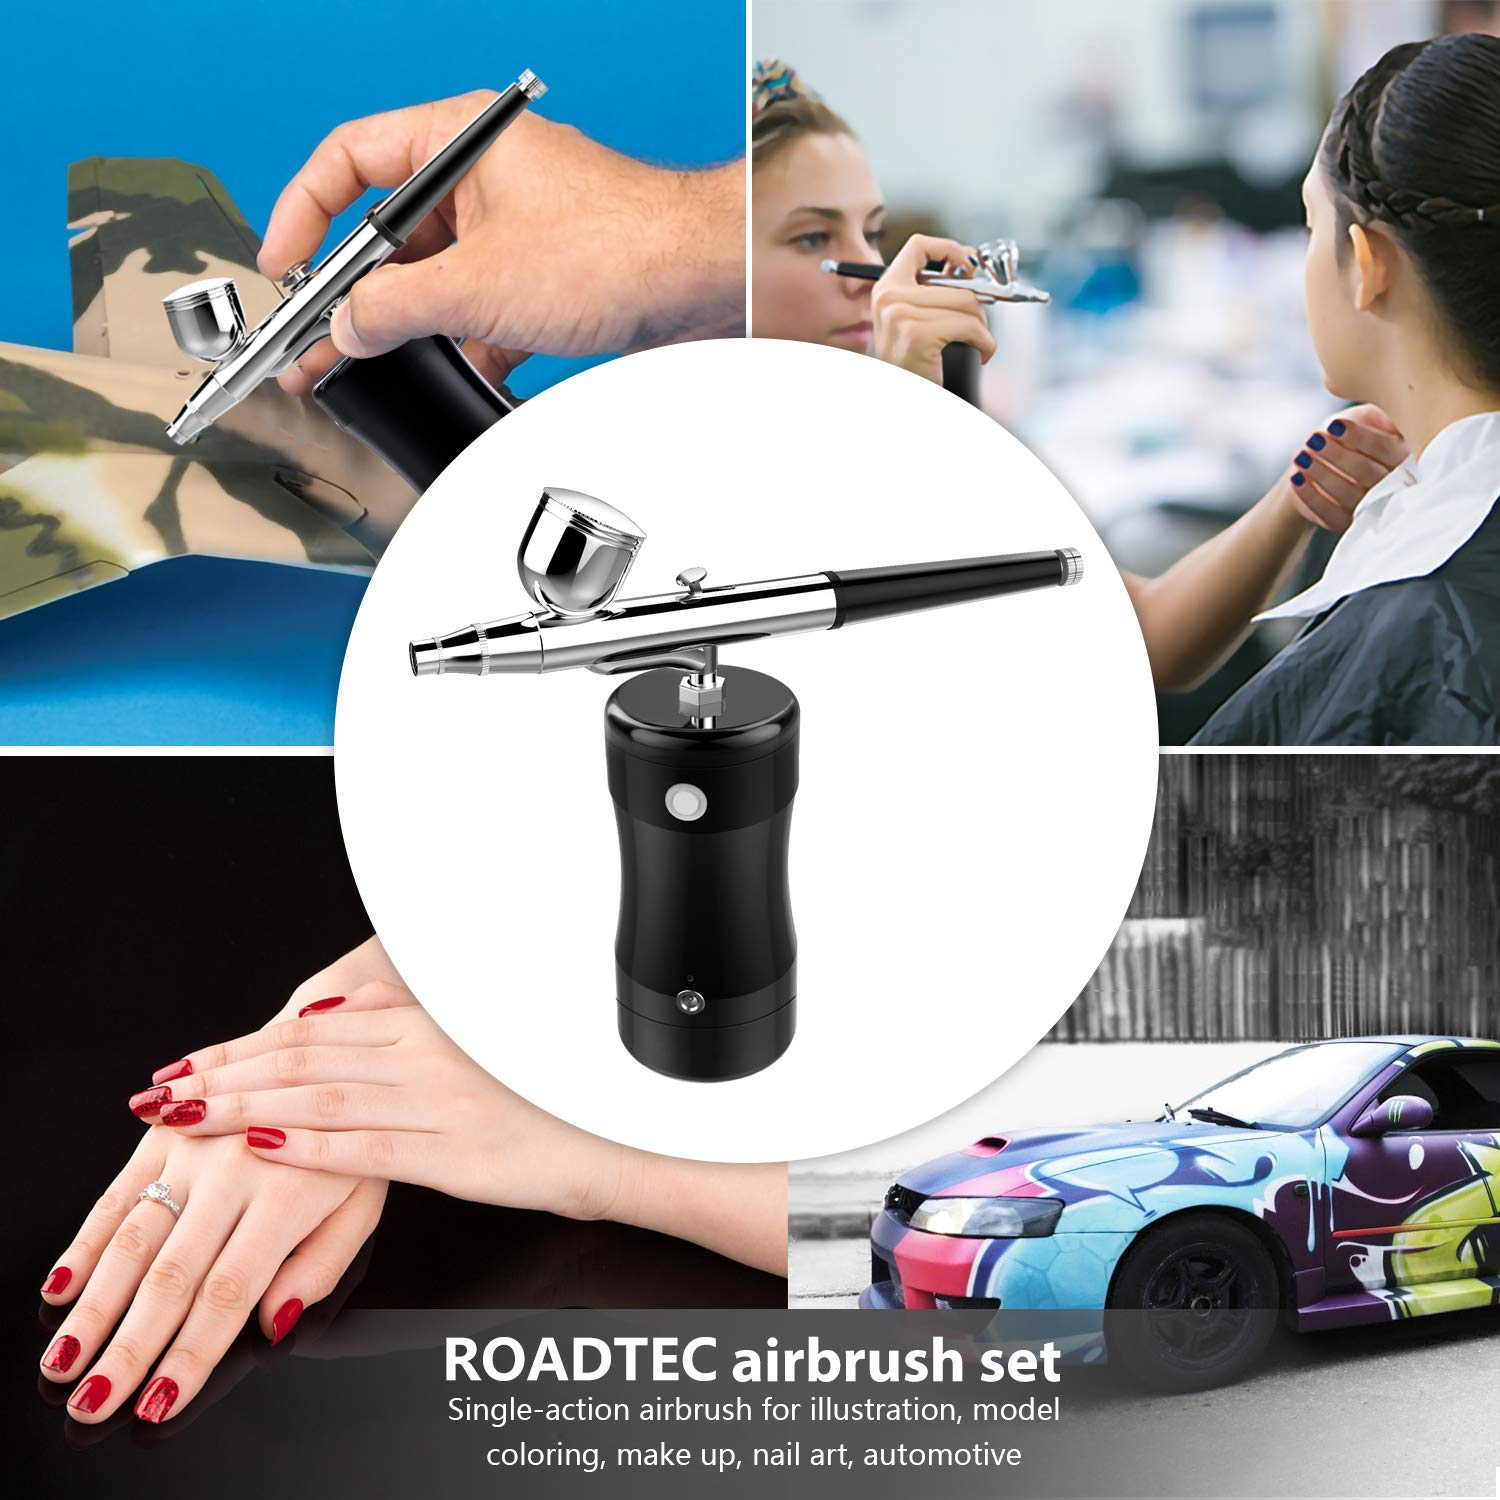 Airbrush Kit Rechargeable Handheld Mini Air Compressor Spray Gun Single Action